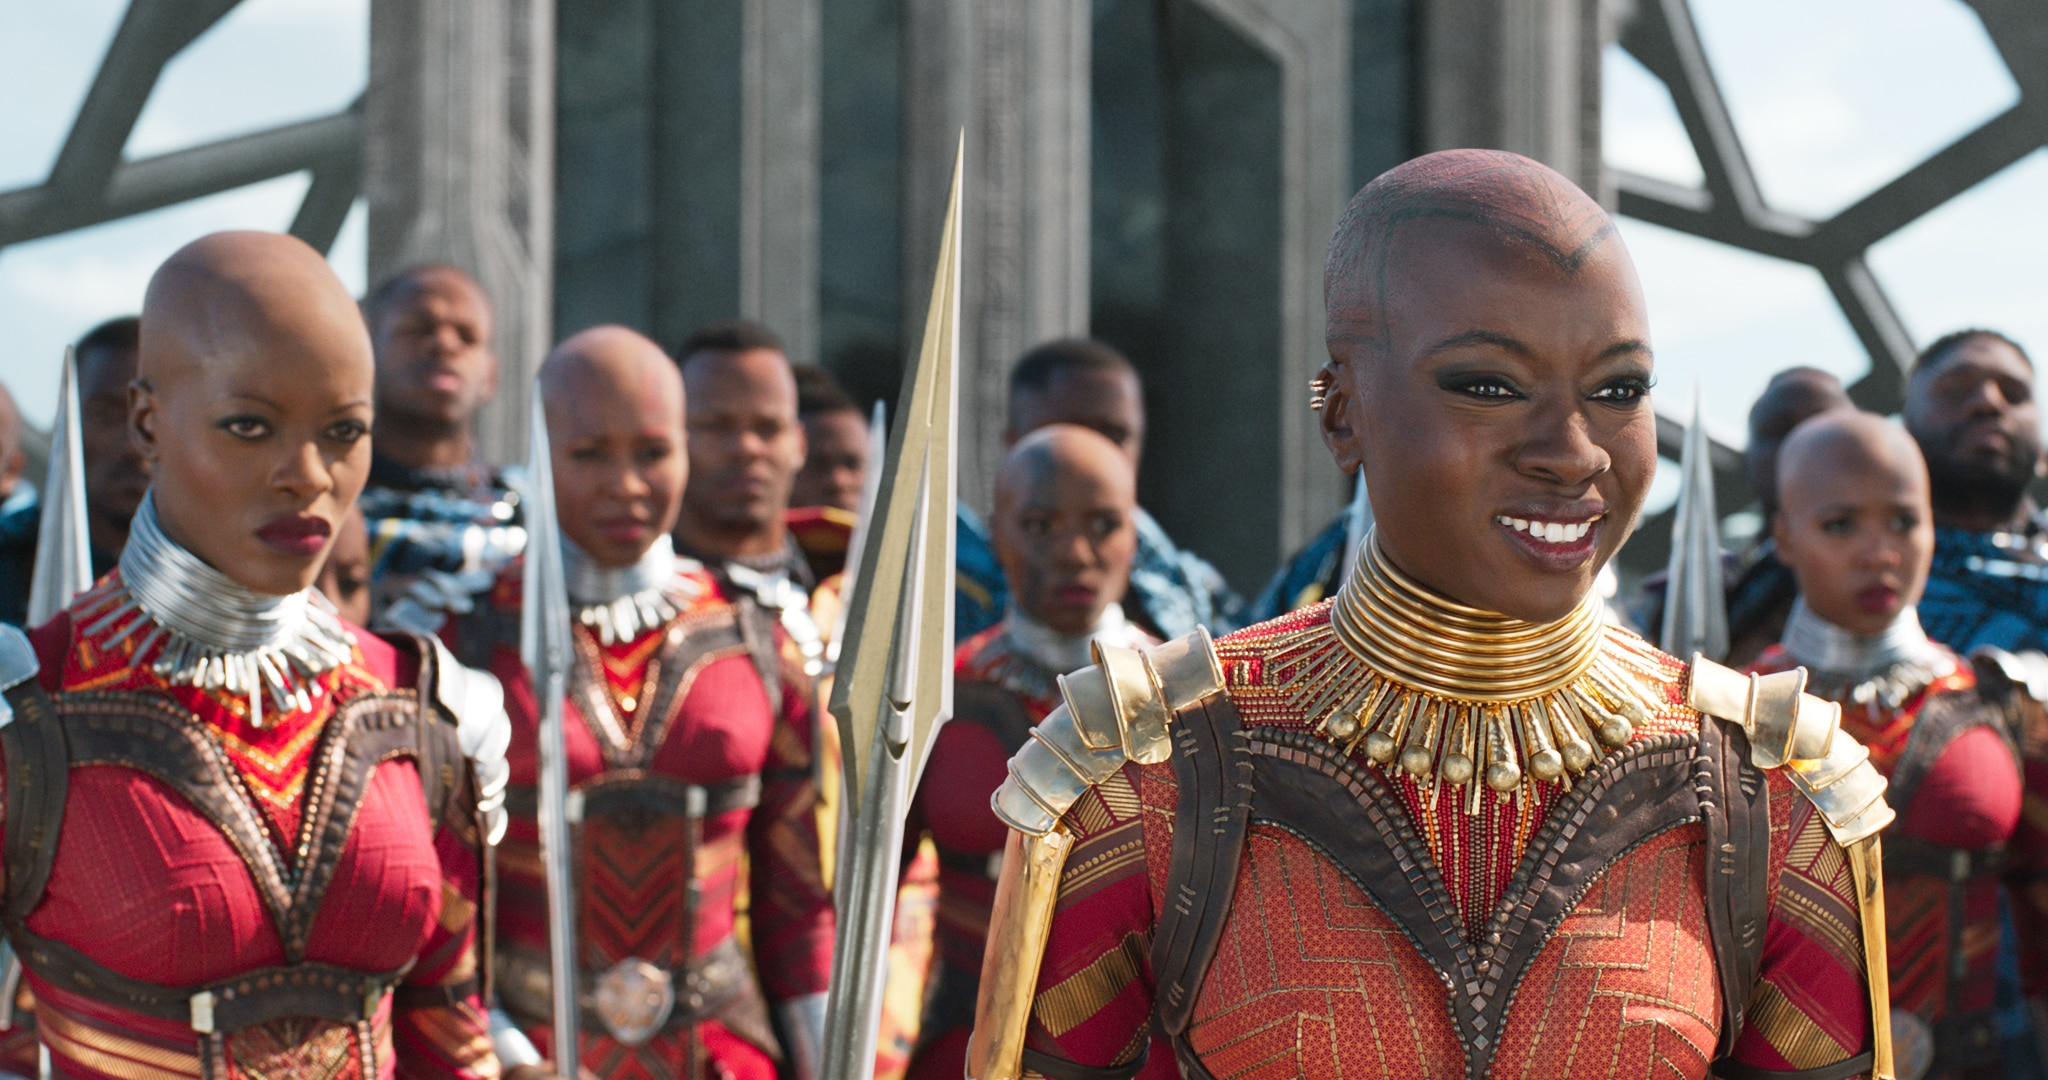 Okoye and the Dora Milaje